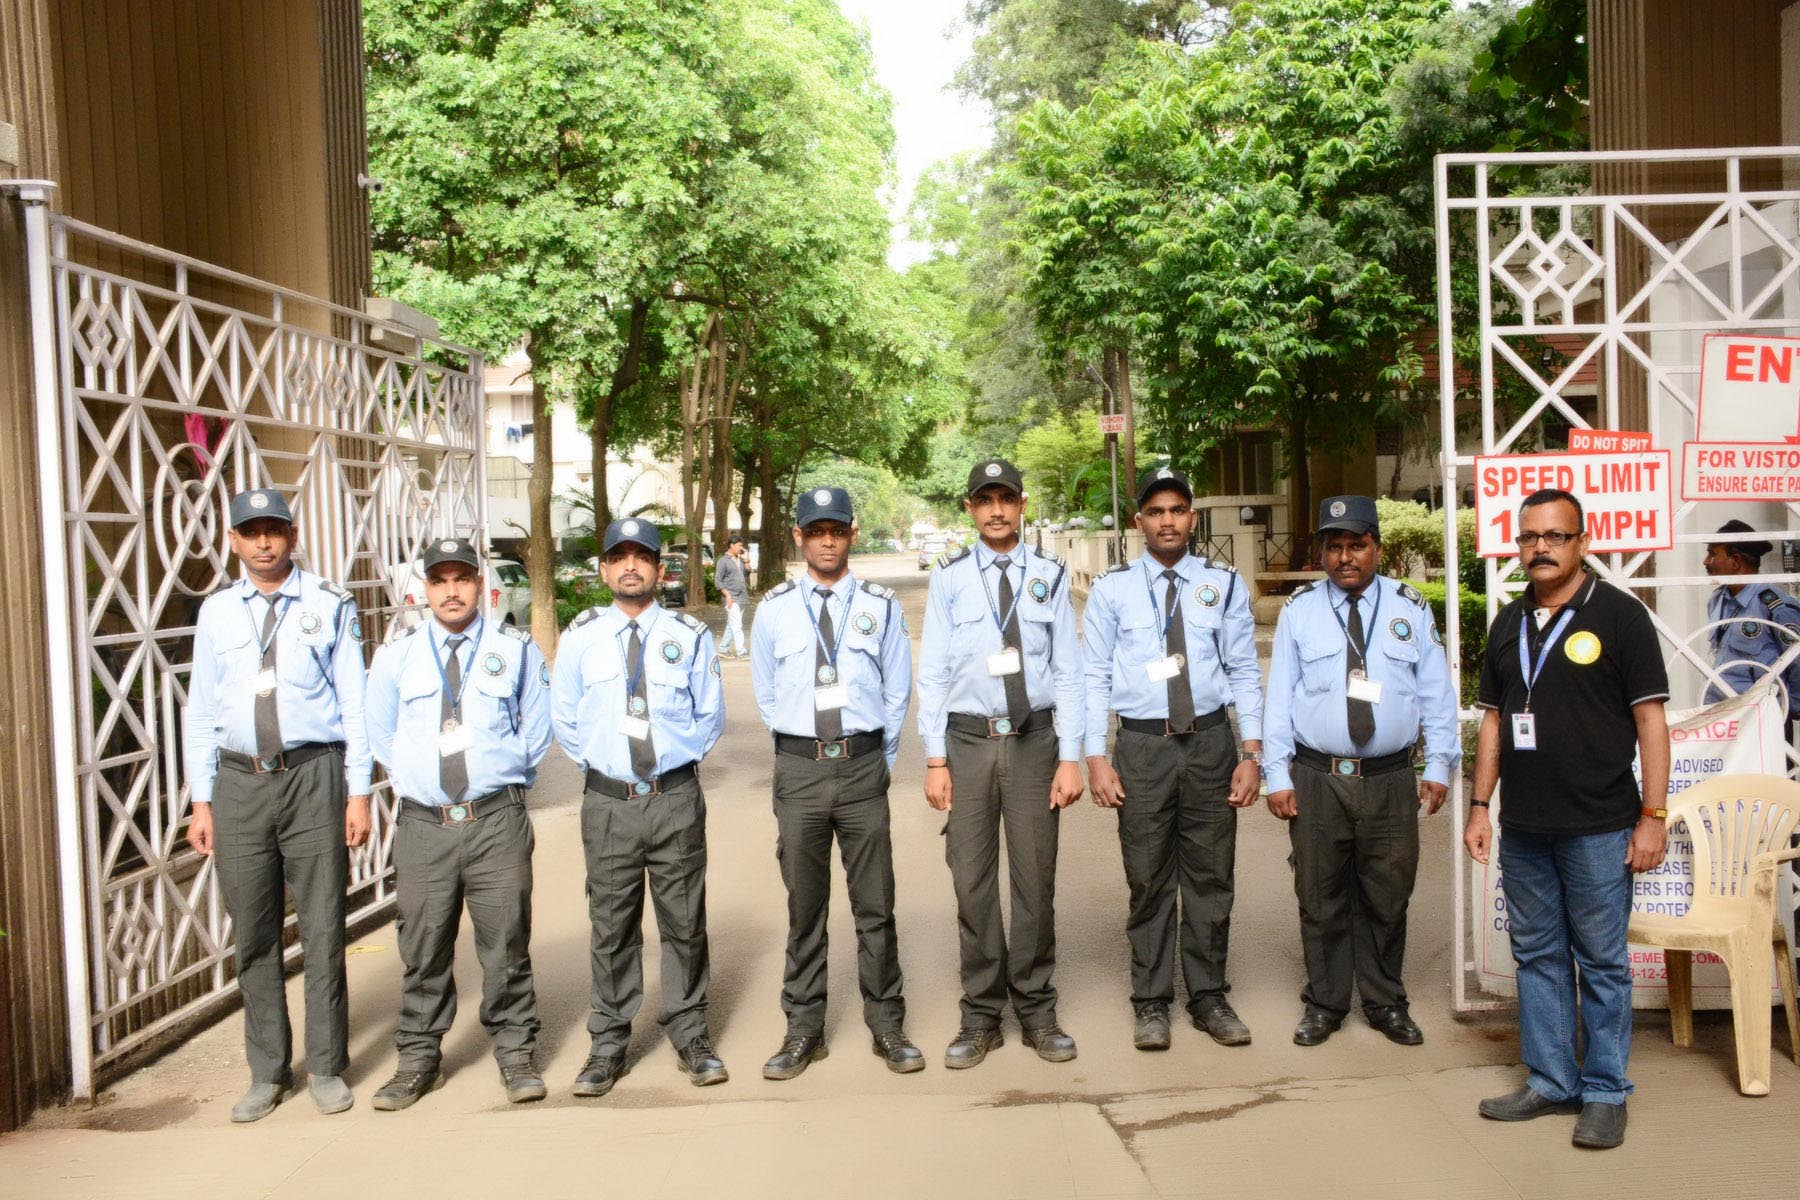 Advantages of Hiring Uniformed Security Personnel